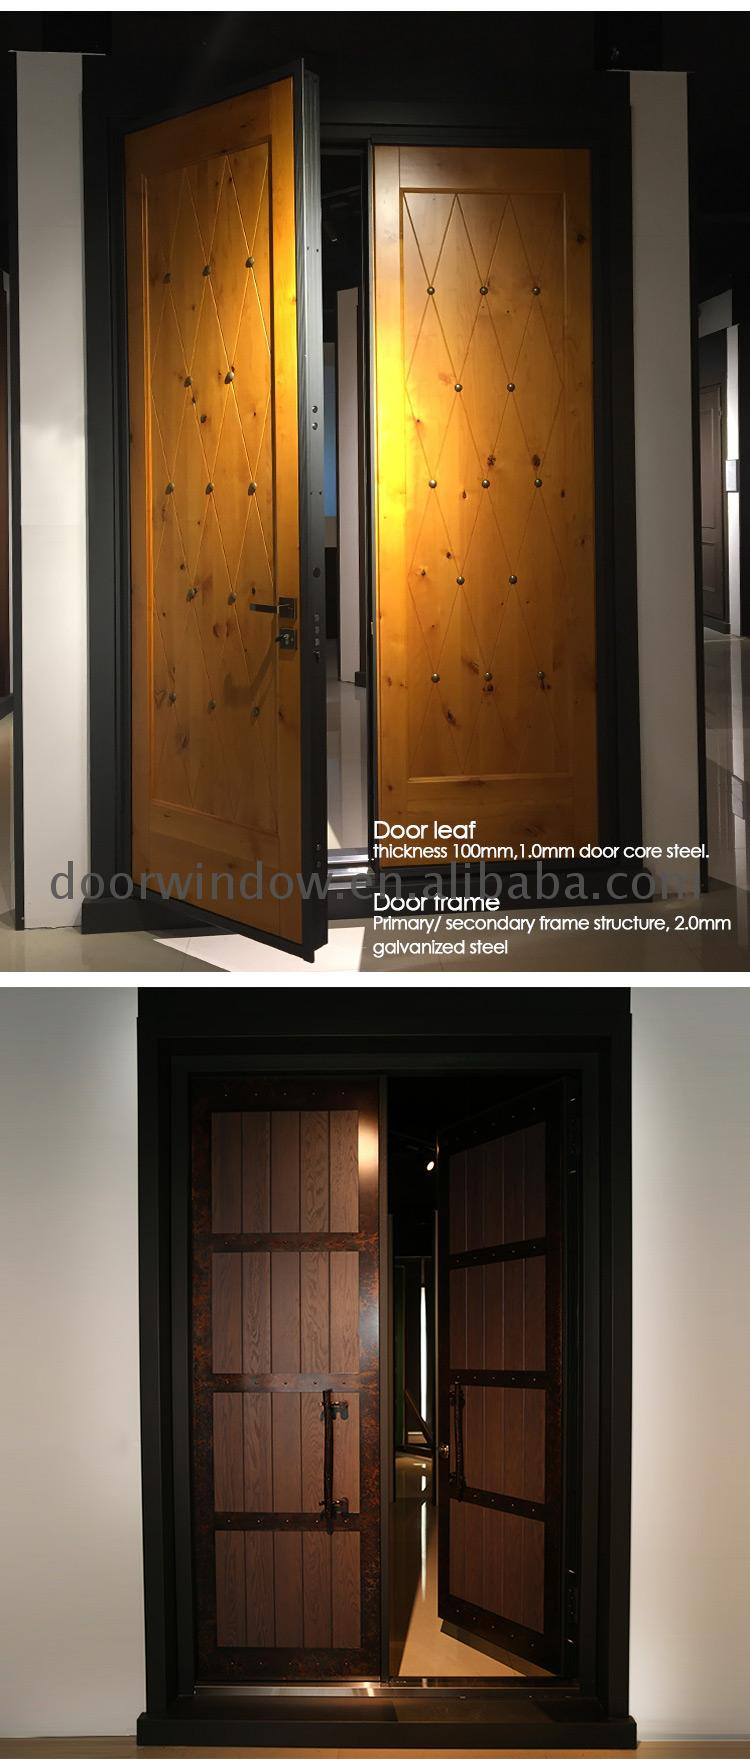 Wooden entry doors double panel design catalogue